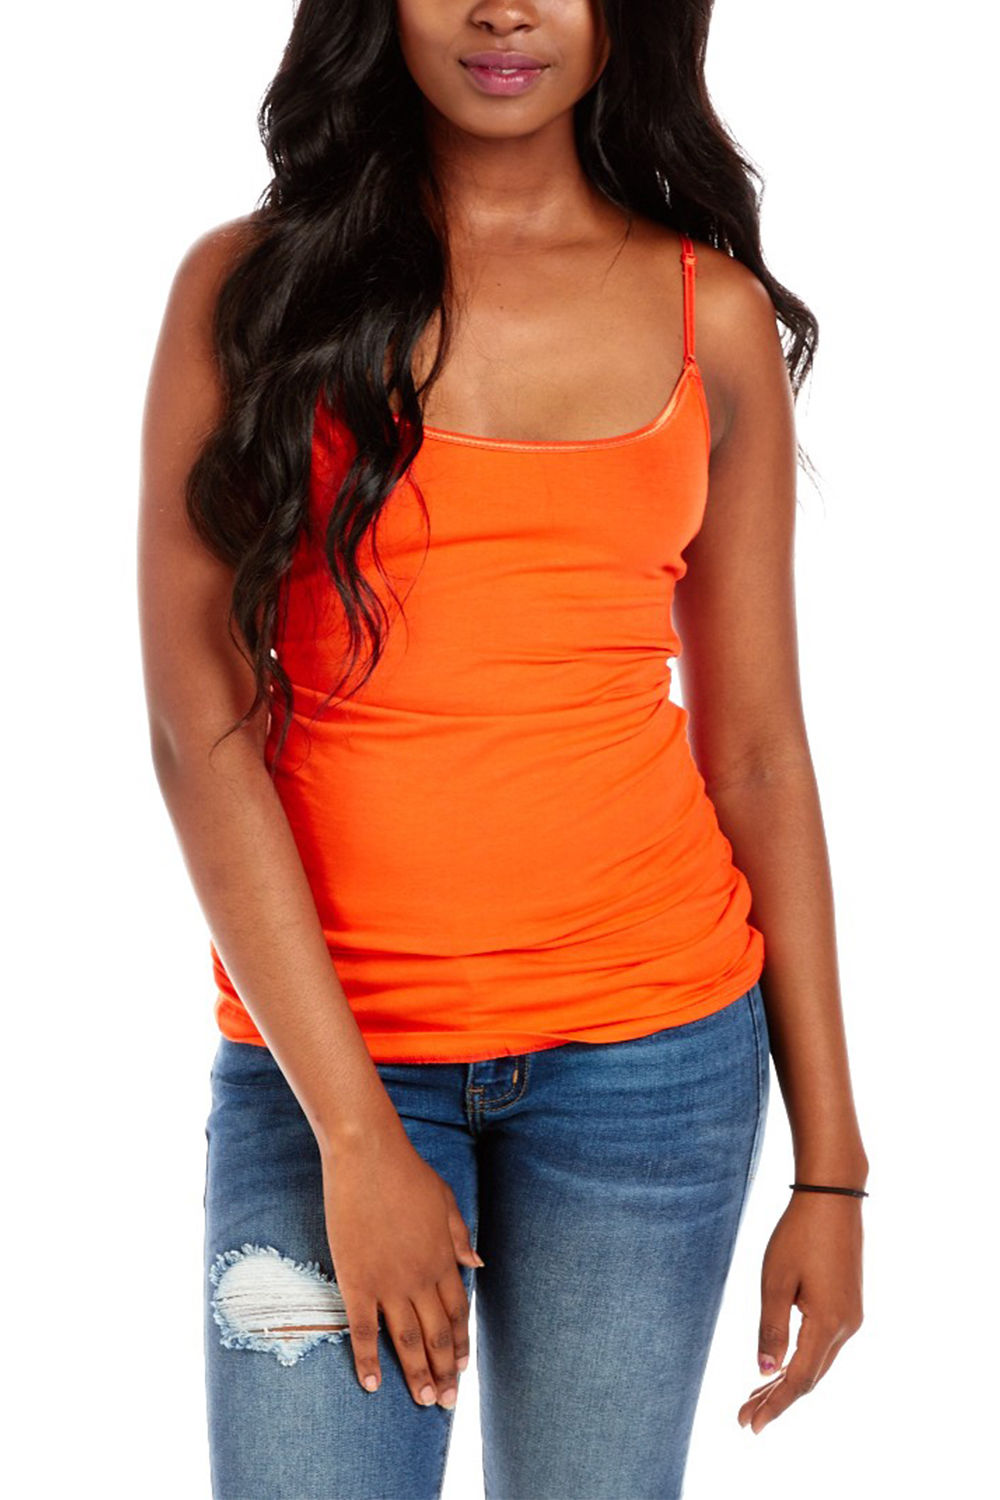 Bozzolo Women Ladies Spaghetti Tank Top rt1002 (S, Jade)